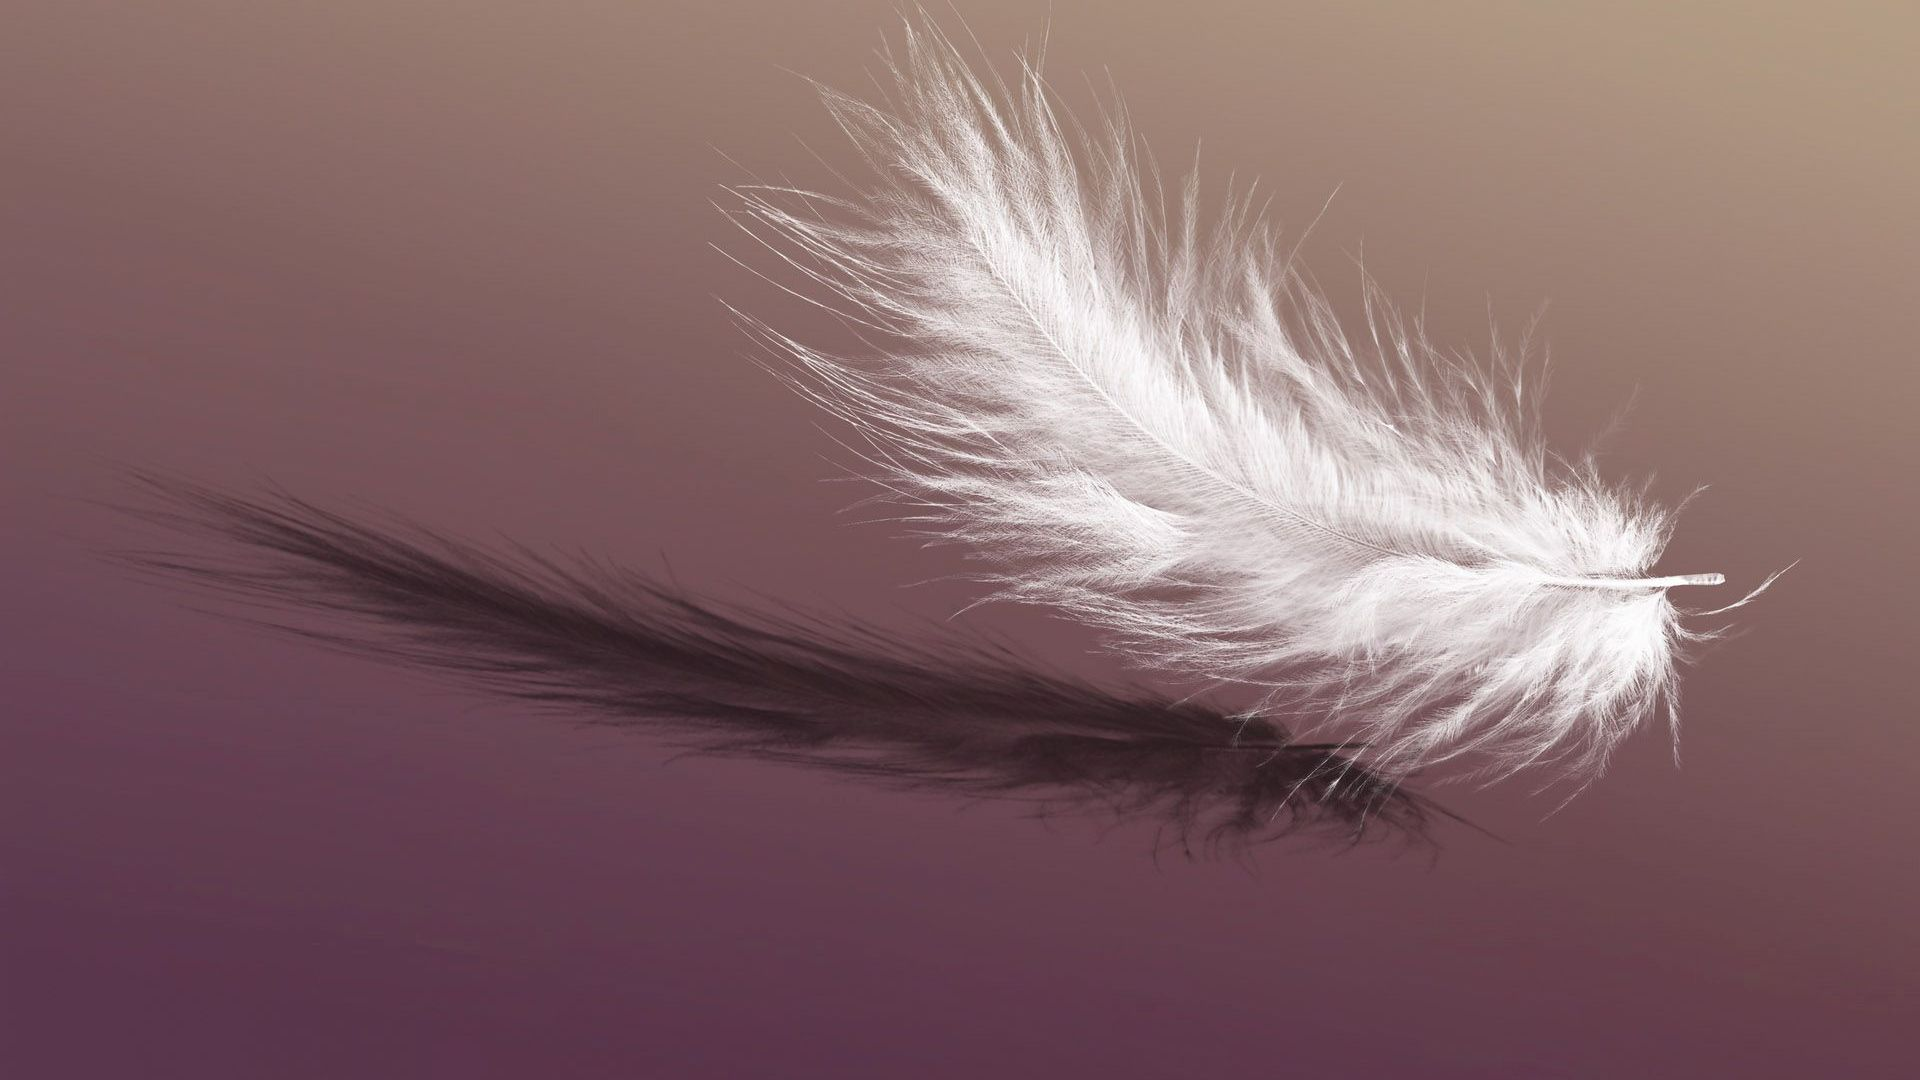 Falling feather wallpaper 32093 1920x1080